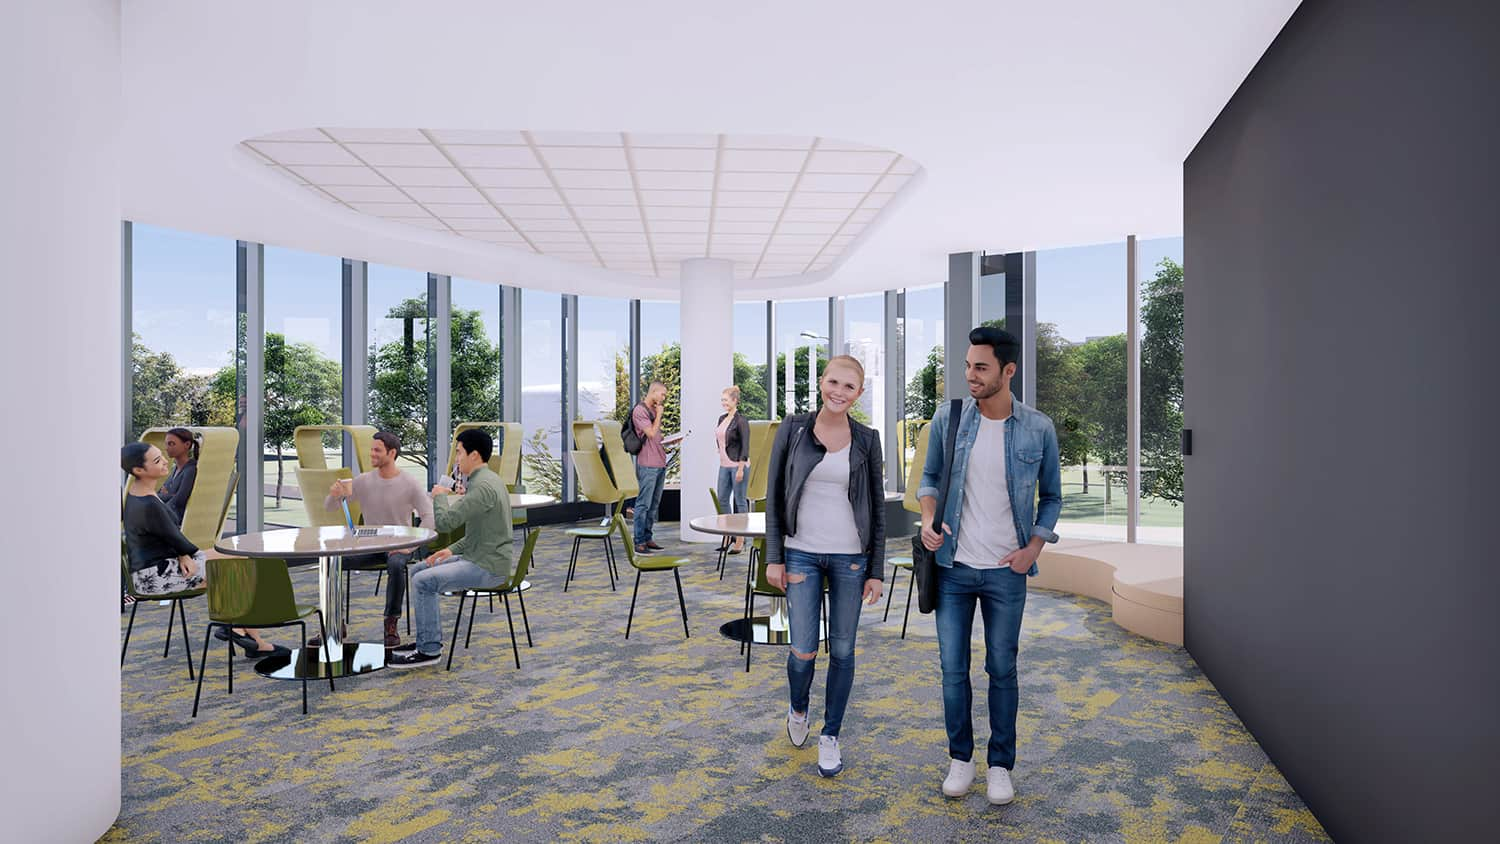 A rendering of a student space with open study areas and access to natural daylight.